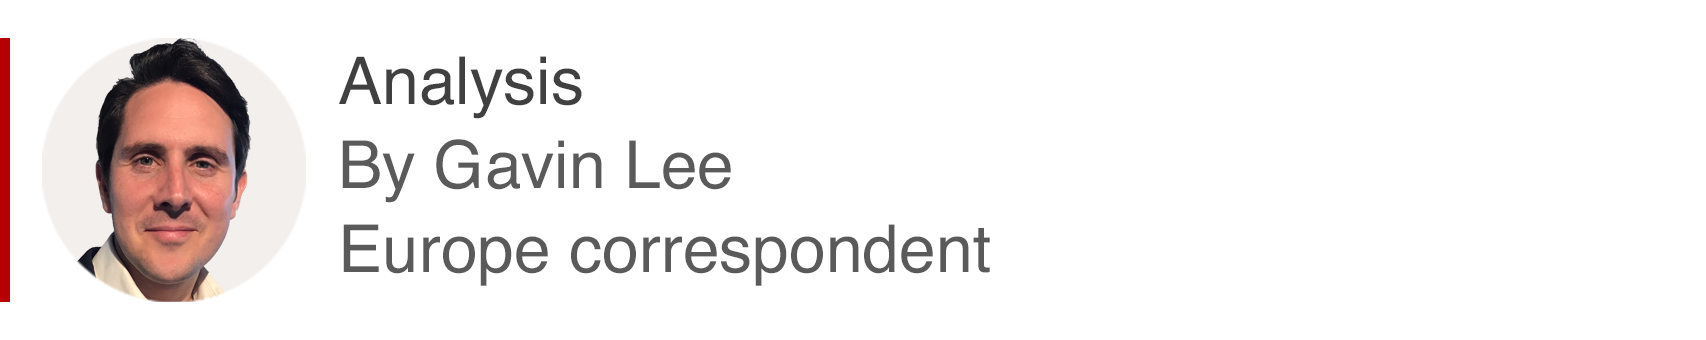 Analysis box by Gavin Lee, Europe correspondent